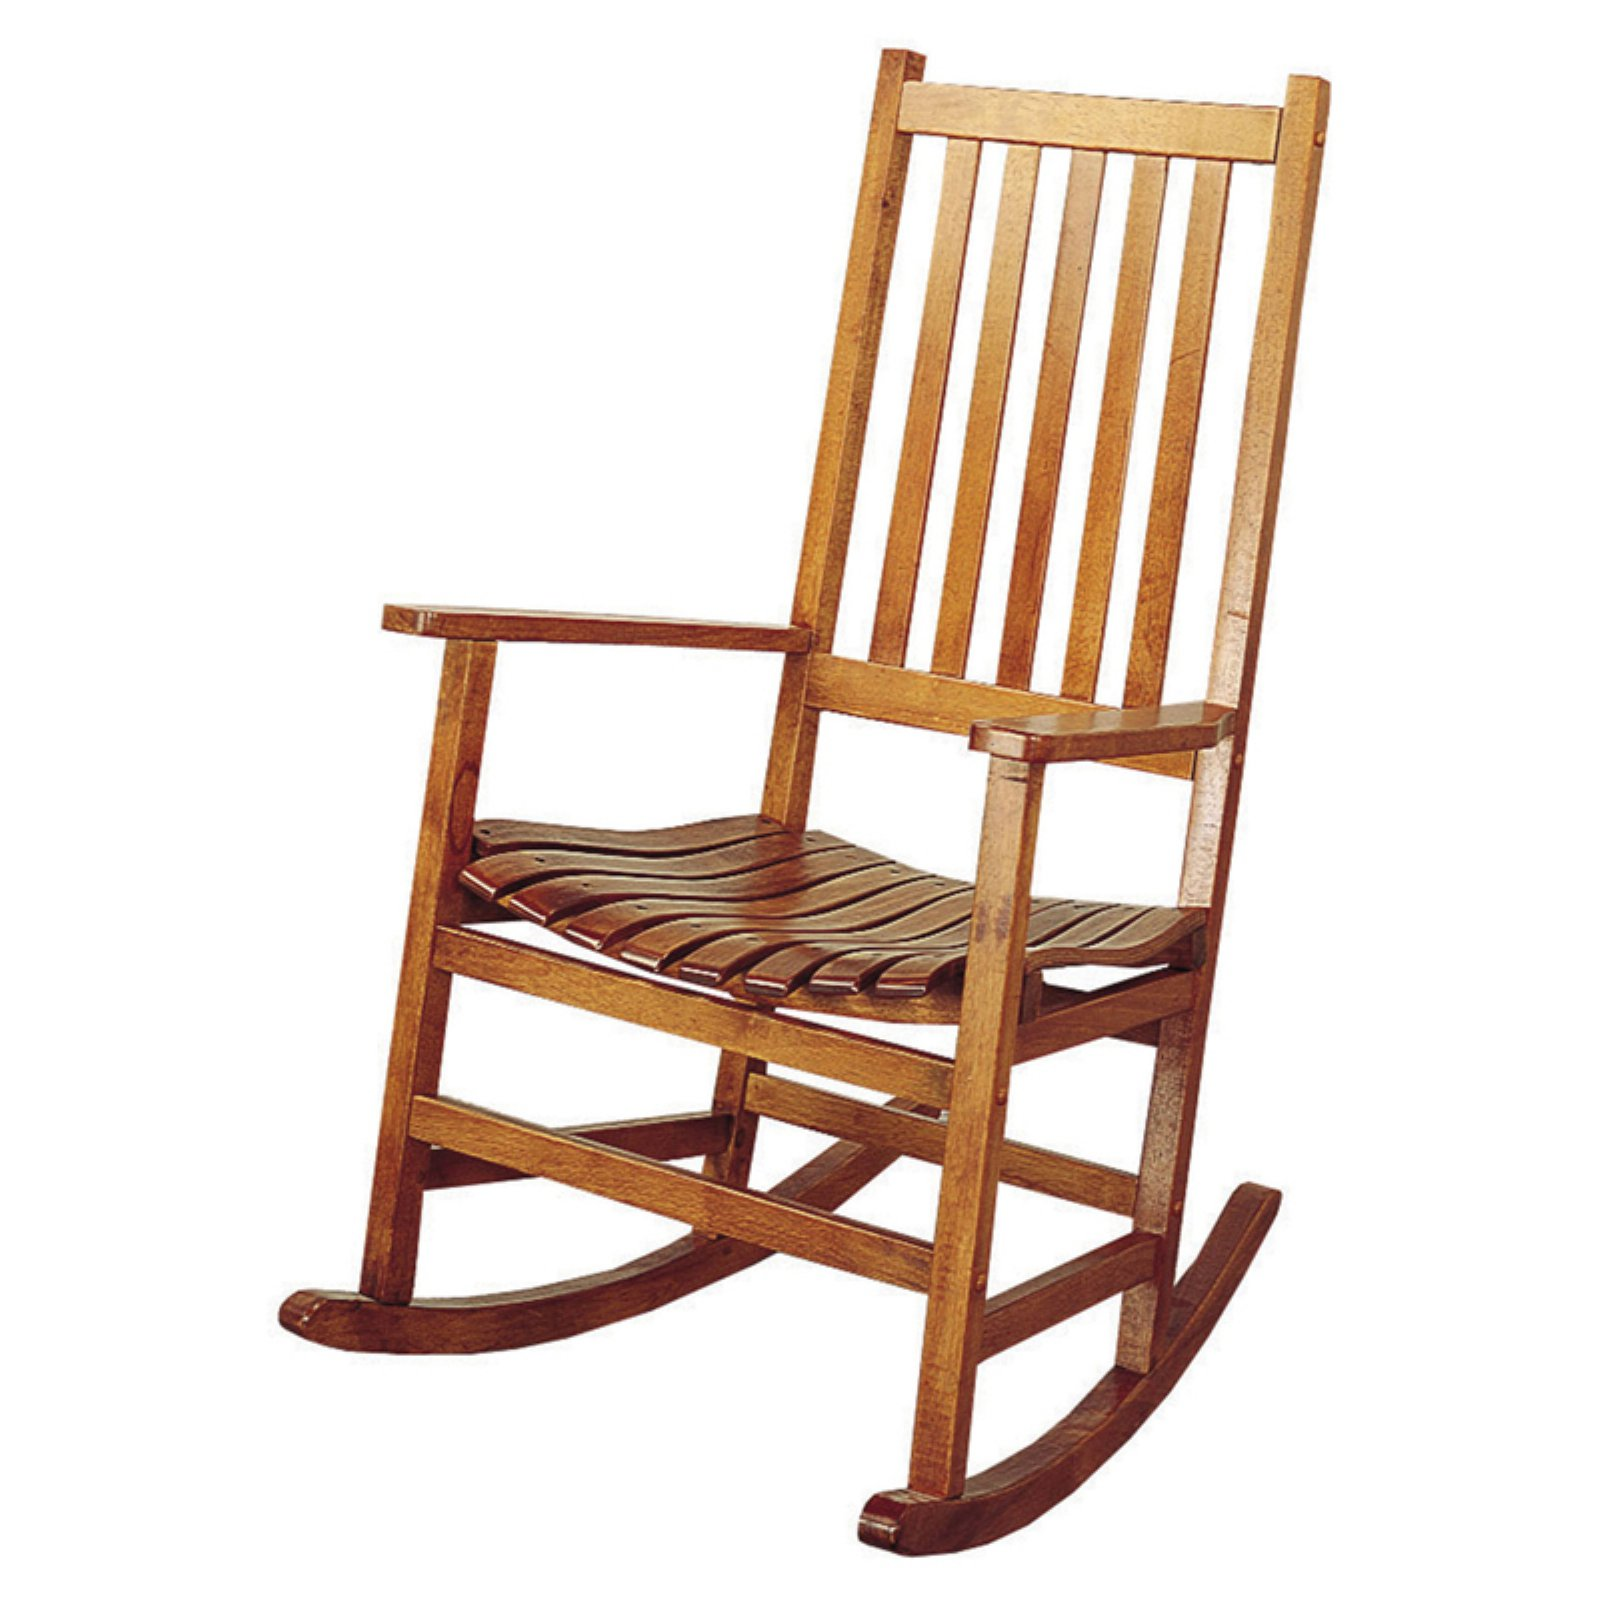 Remarkable Coaster Company Country Style Rocker Warm Brown Walmart Com Camellatalisay Diy Chair Ideas Camellatalisaycom